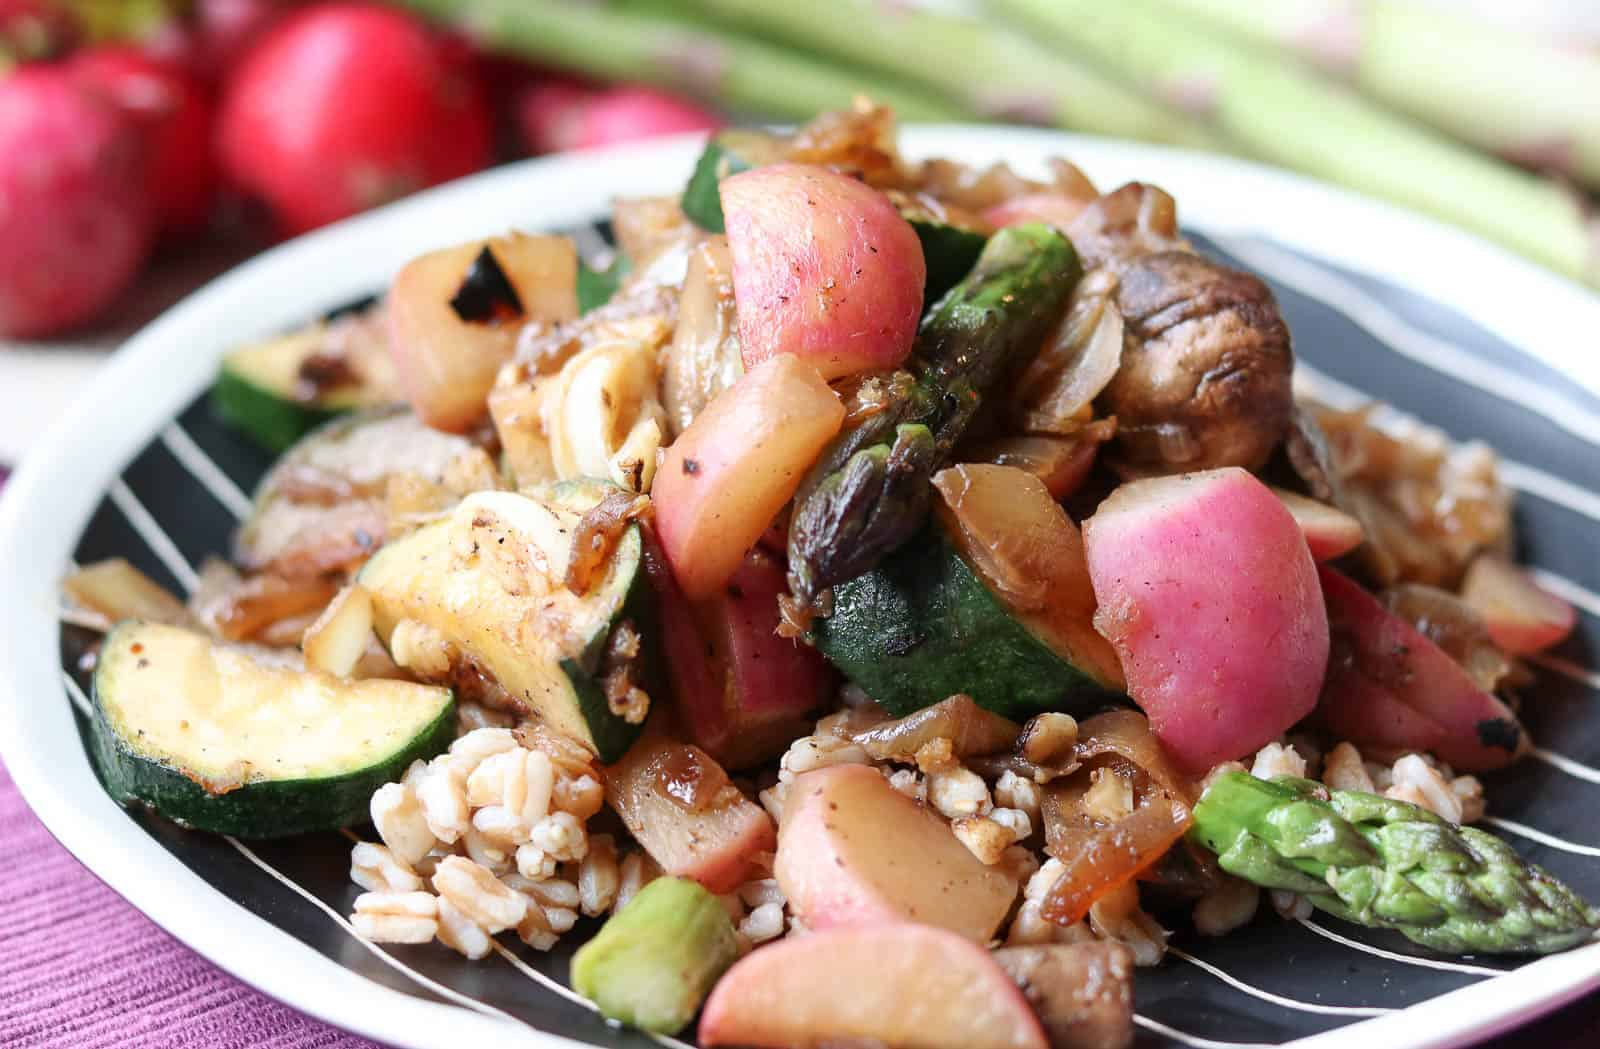 Asian Sautéed Radish Salad with Farro - Sauteed radishes, asparagus, mushrooms on top of farro on a plate